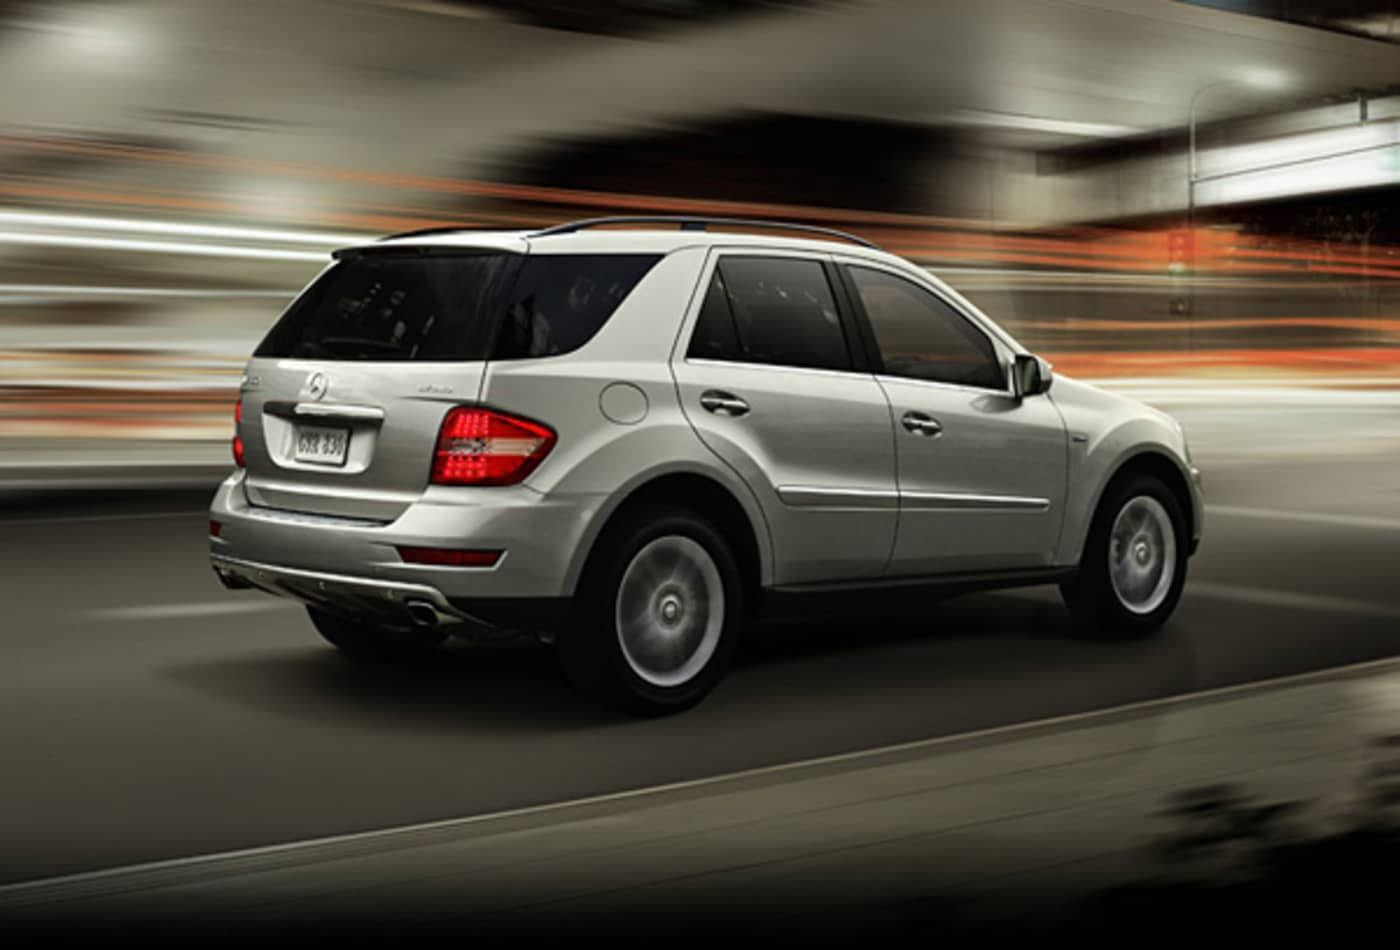 Mercedes-Benz-ML450-Hybrid-Luxury-Hybrids.jpg